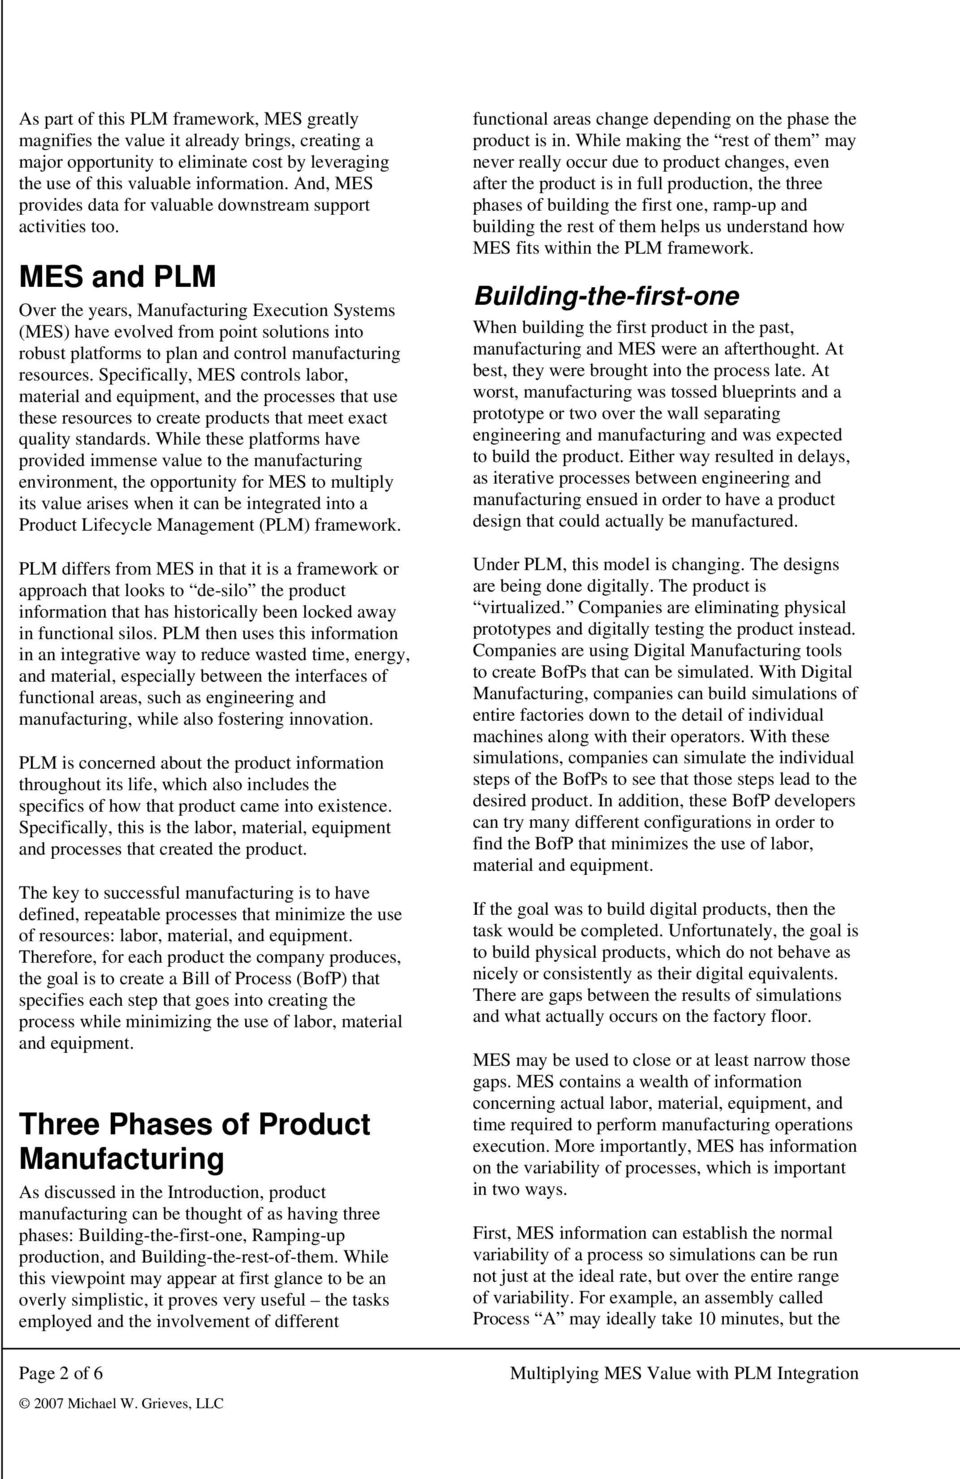 MES and PLM Over the years, Manufacturing Execution Systems (MES) have evolved from point solutions into robust platforms to plan and control manufacturing resources.